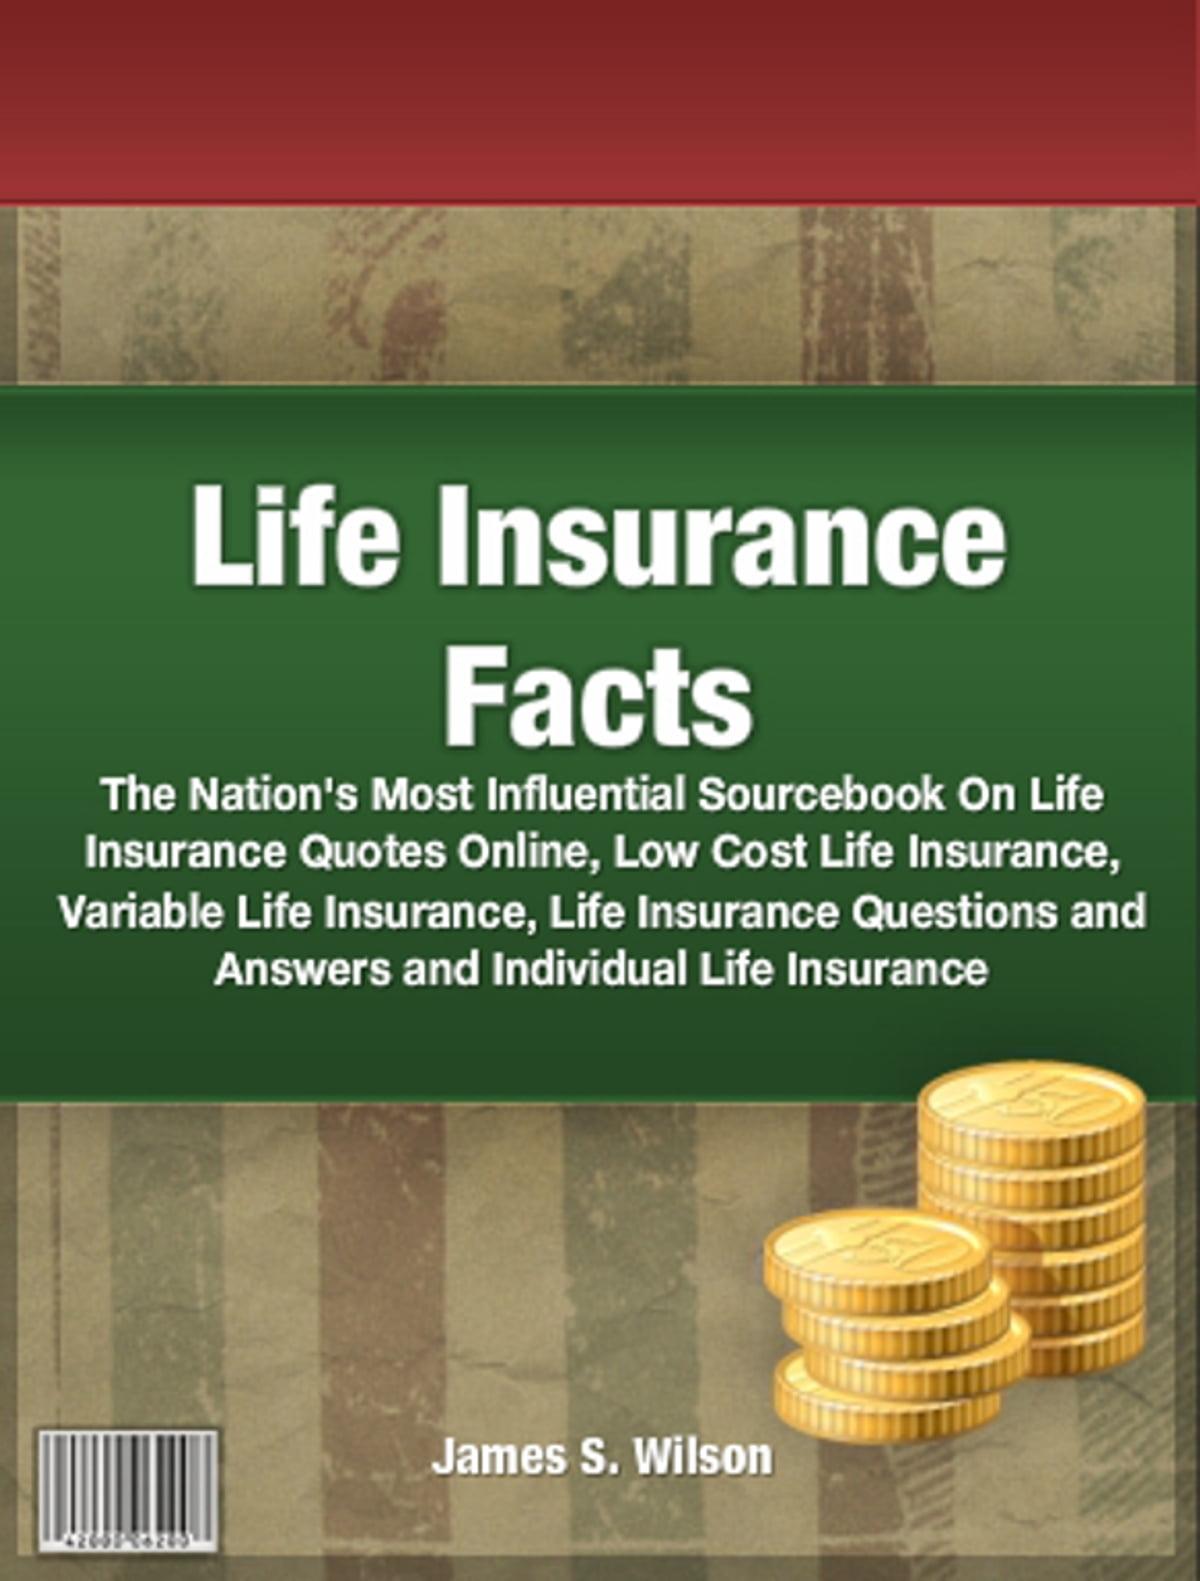 Affordable Life Insurance Quotes Online Life Insurance Facts Ebookjames Swilson  1230000195032